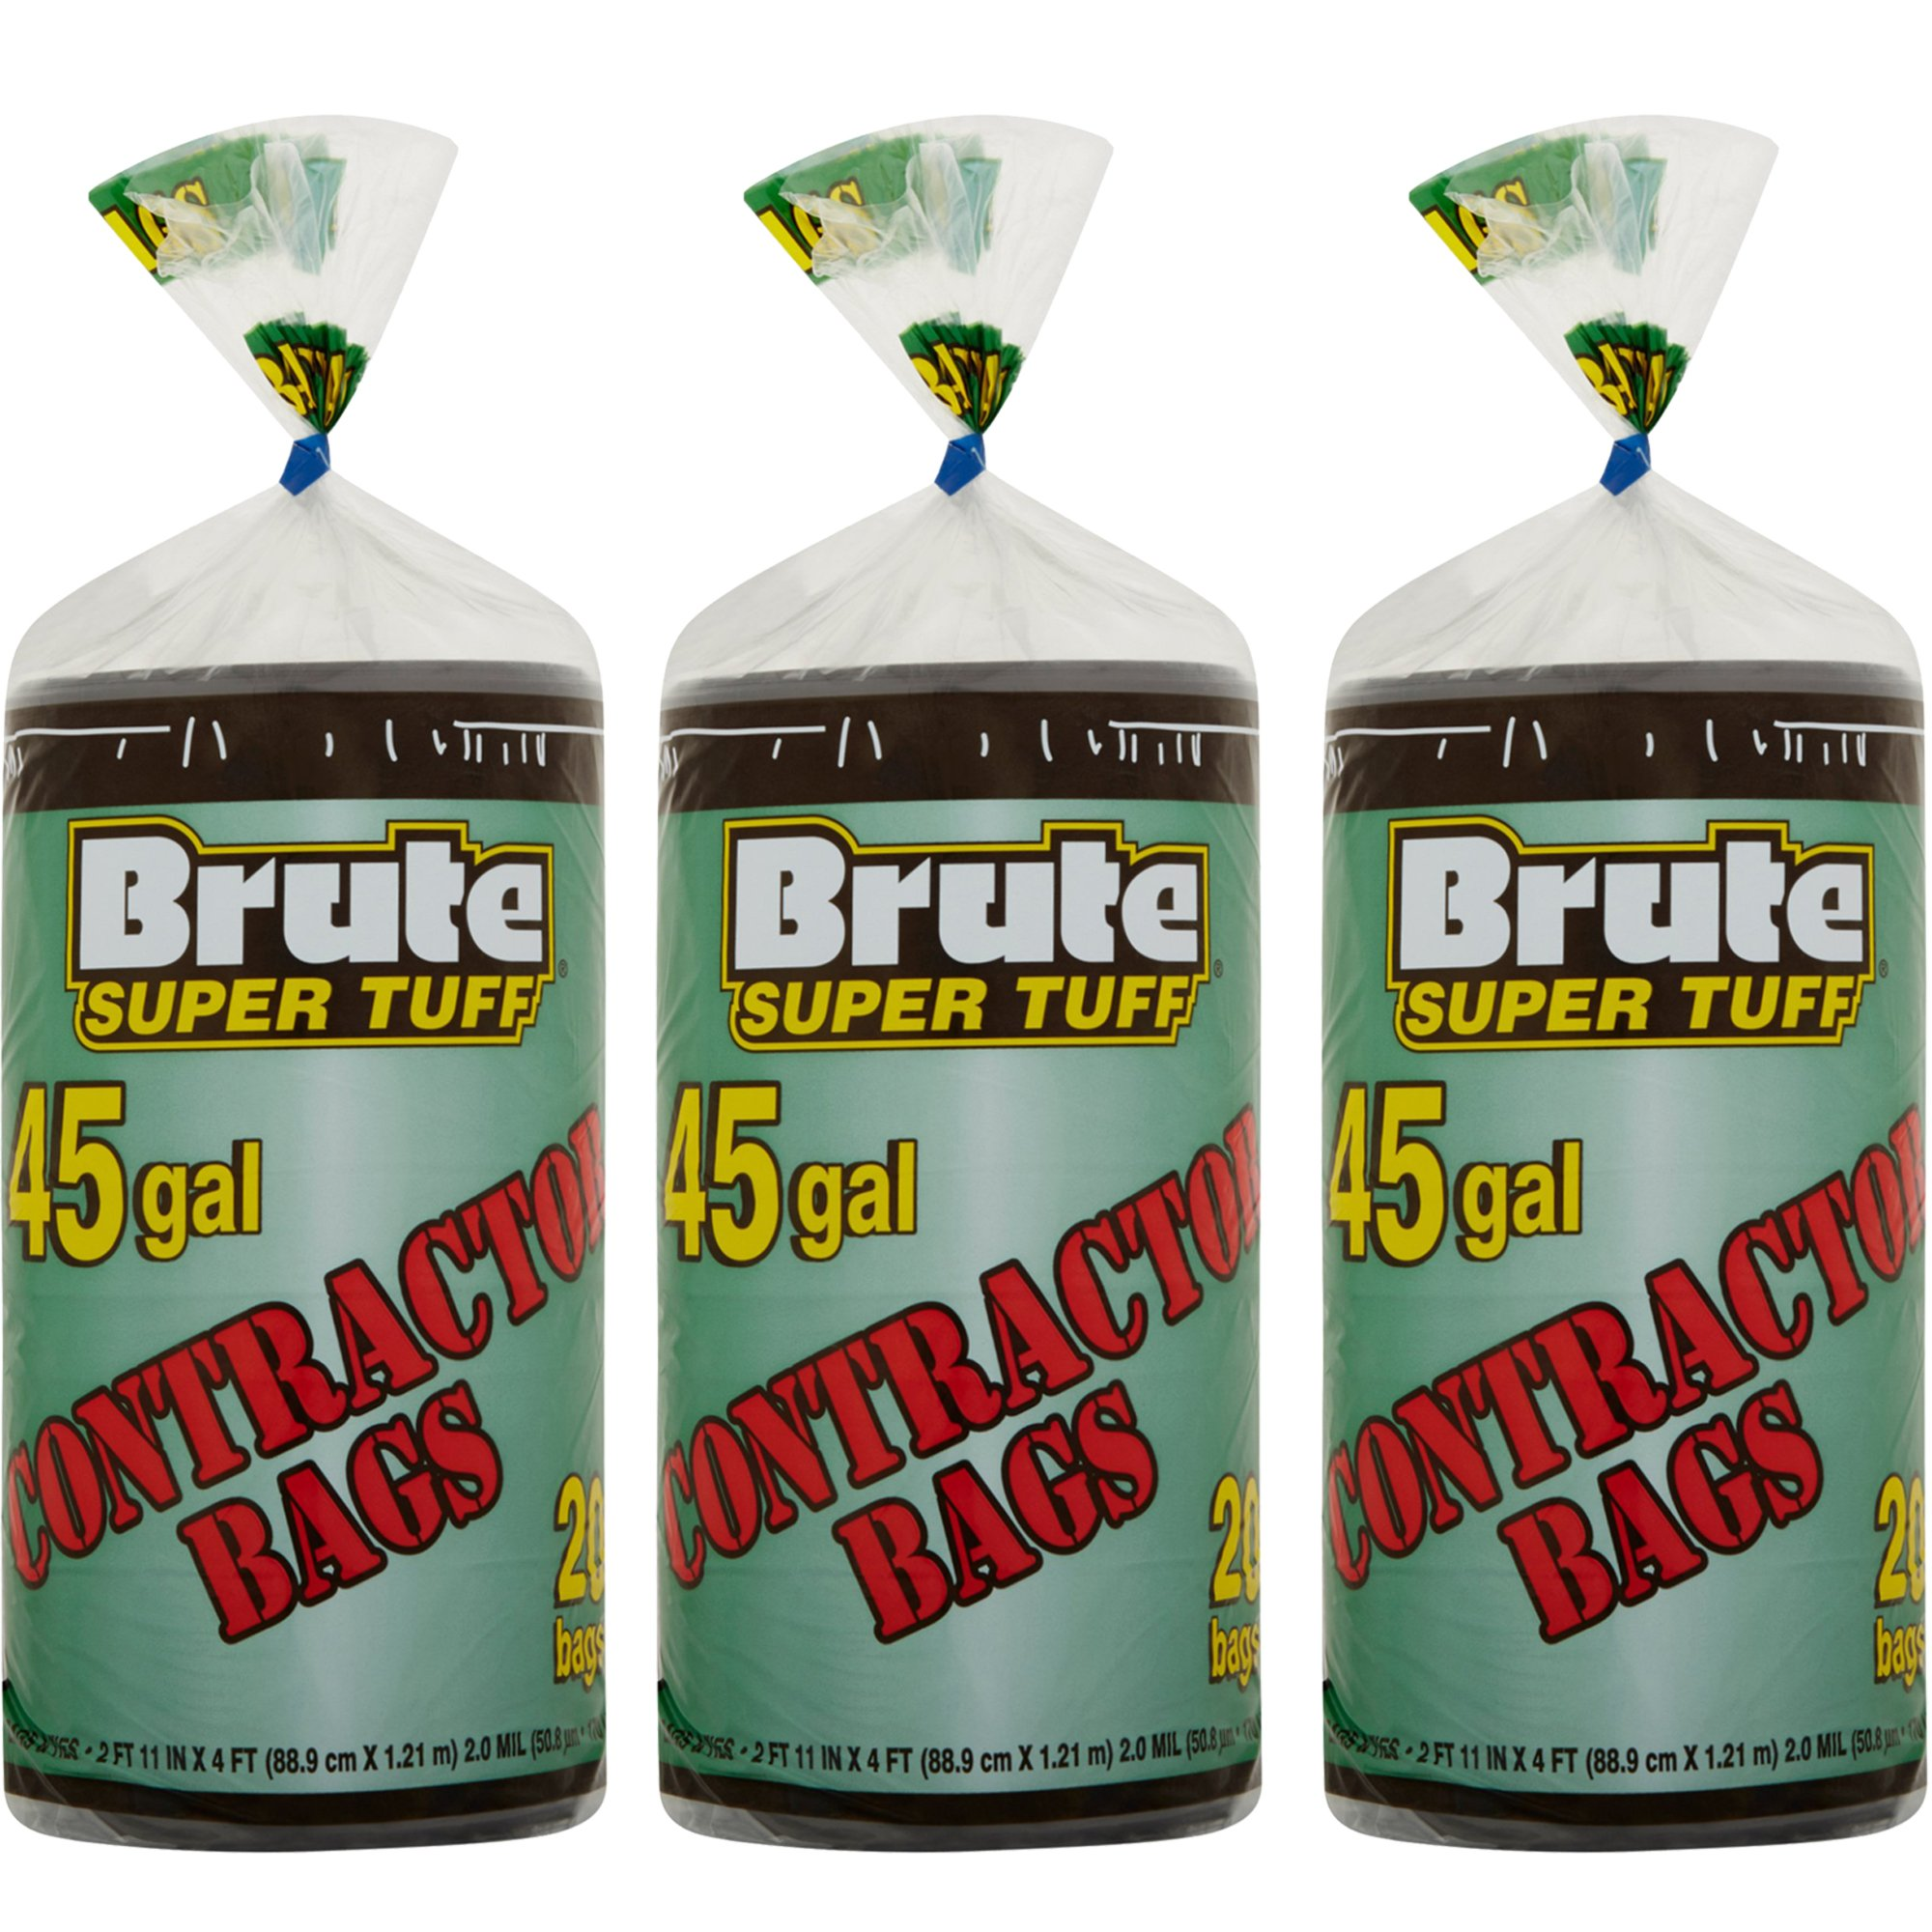 Brute Super Tuff 45 Gallon 20ct Contractor Bags, 3-Pack by Brute